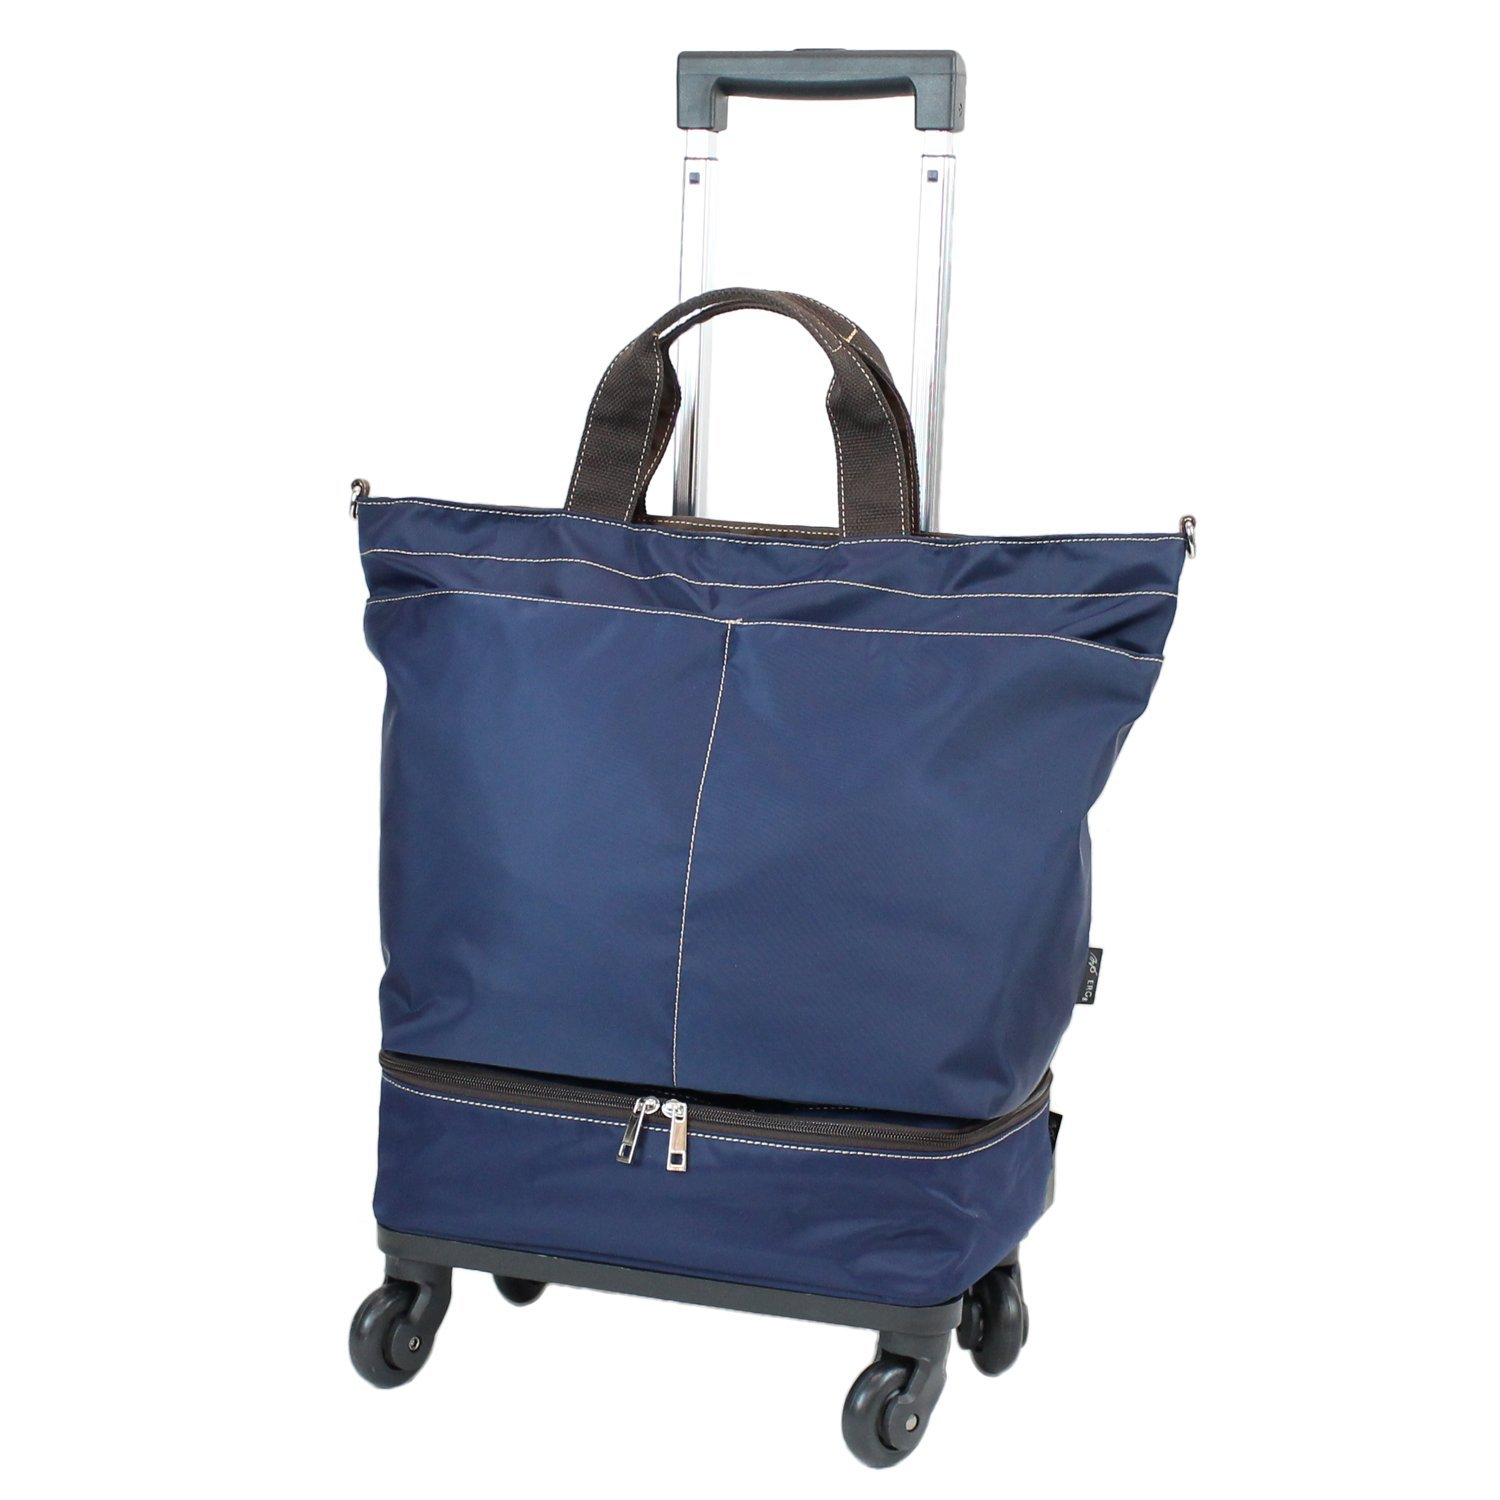 【COLOCOLO by MOIERG】 Rolling Shopper Tote Bag Carry-on Trolley Cabin Suitcase (Navy blue) by MOIERG